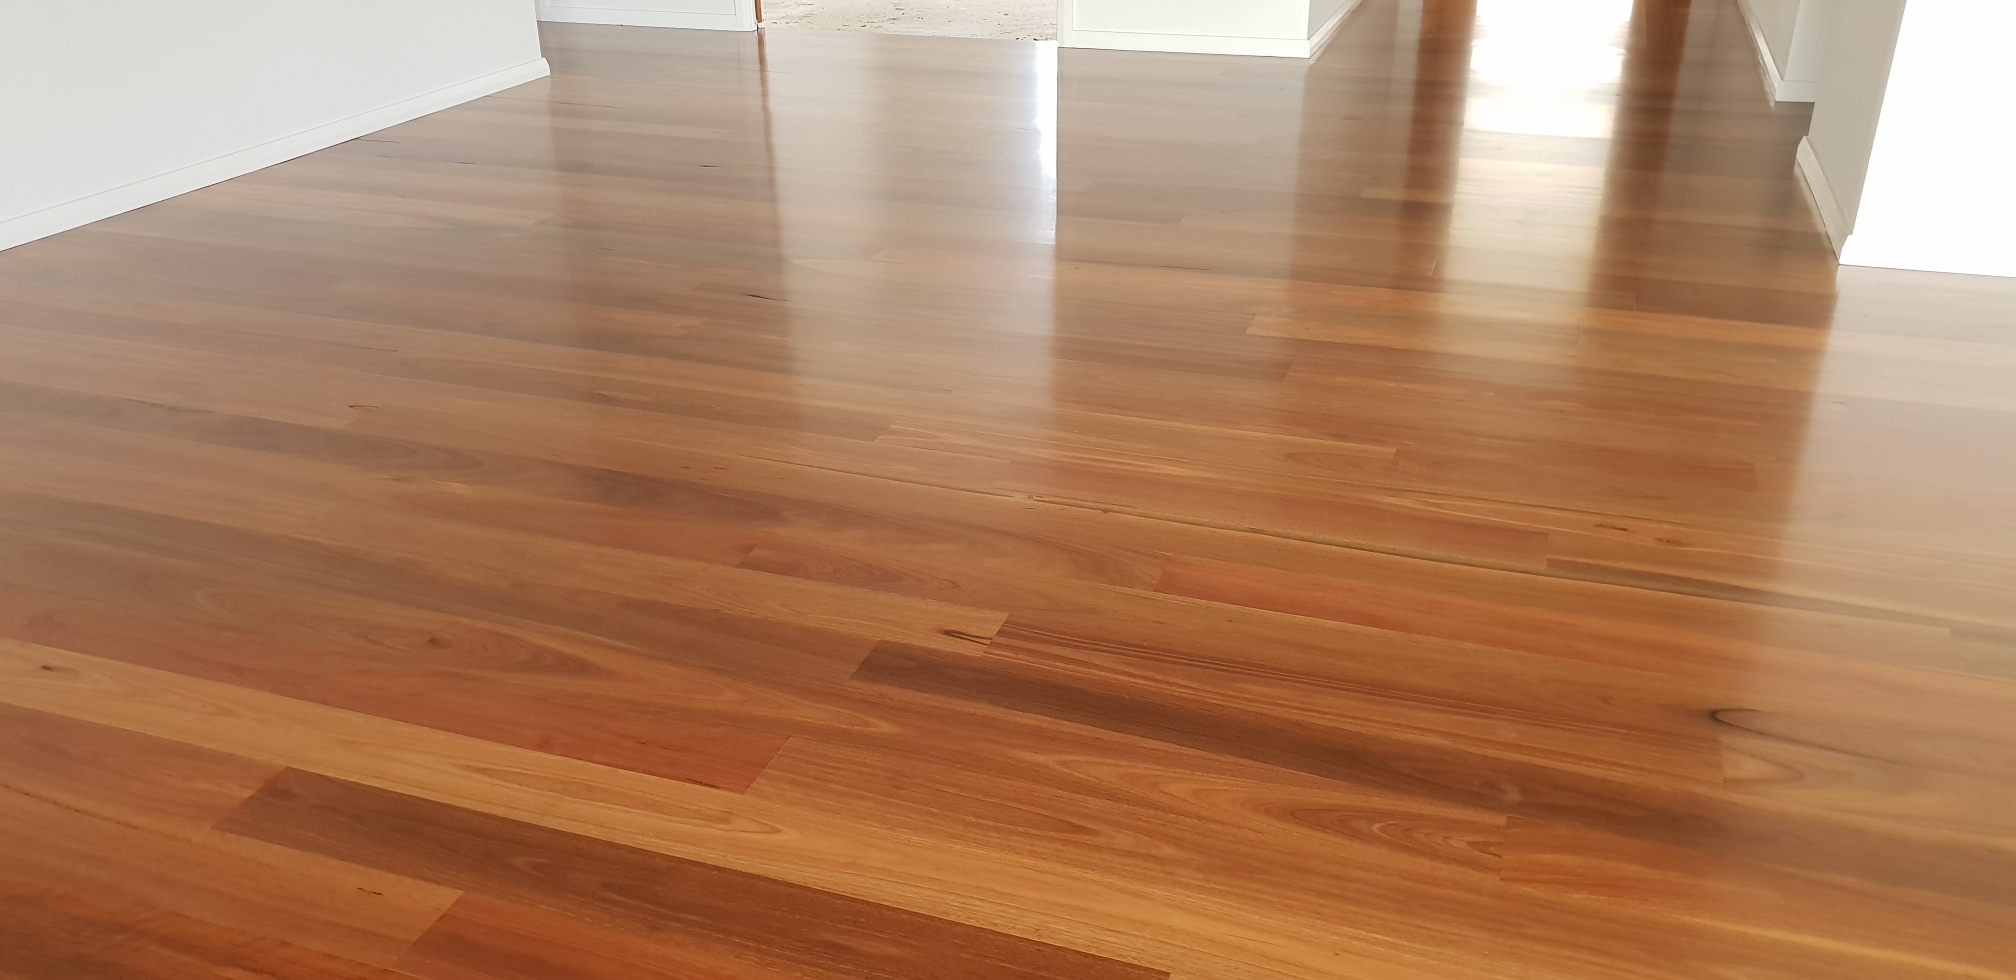 Satin Finish Spotted Gum Timber Floors